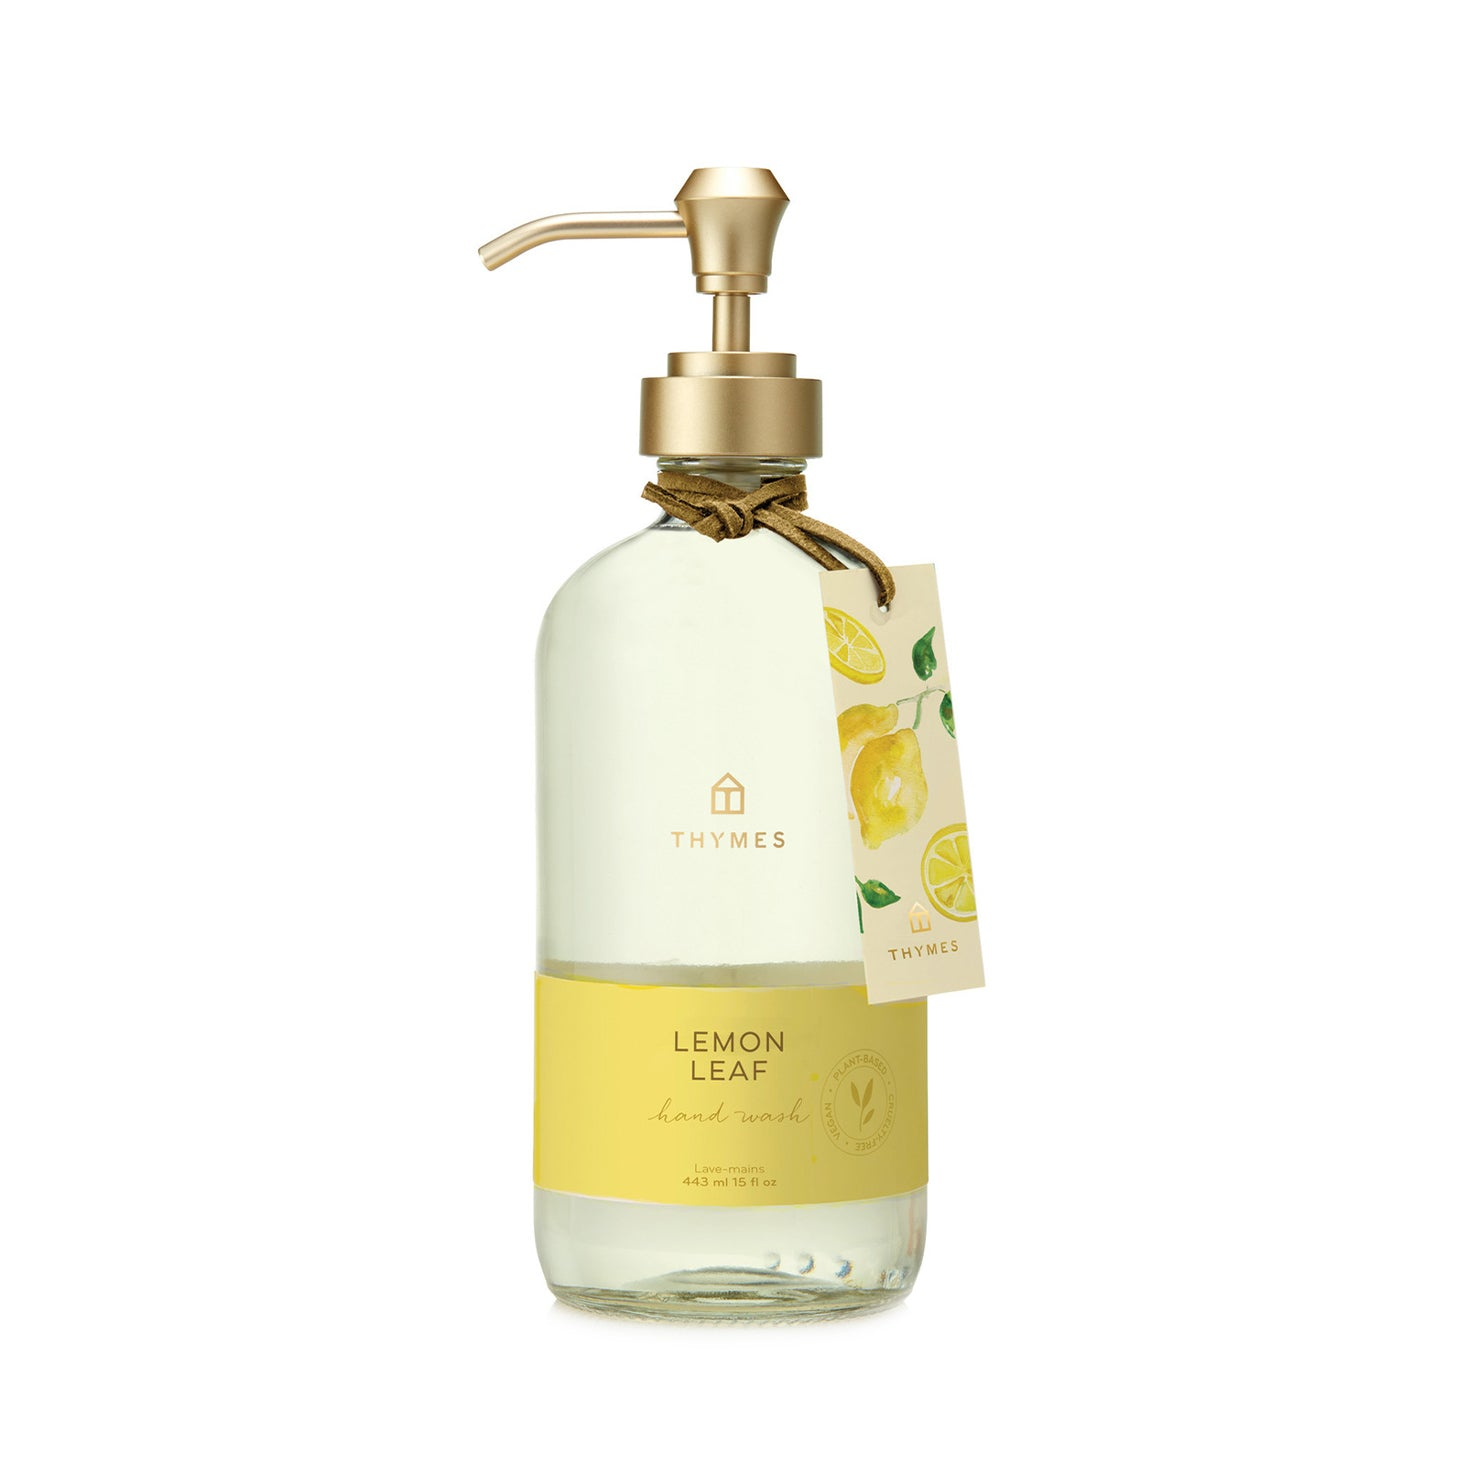 Thymes Lemon Leaf Hand Wash